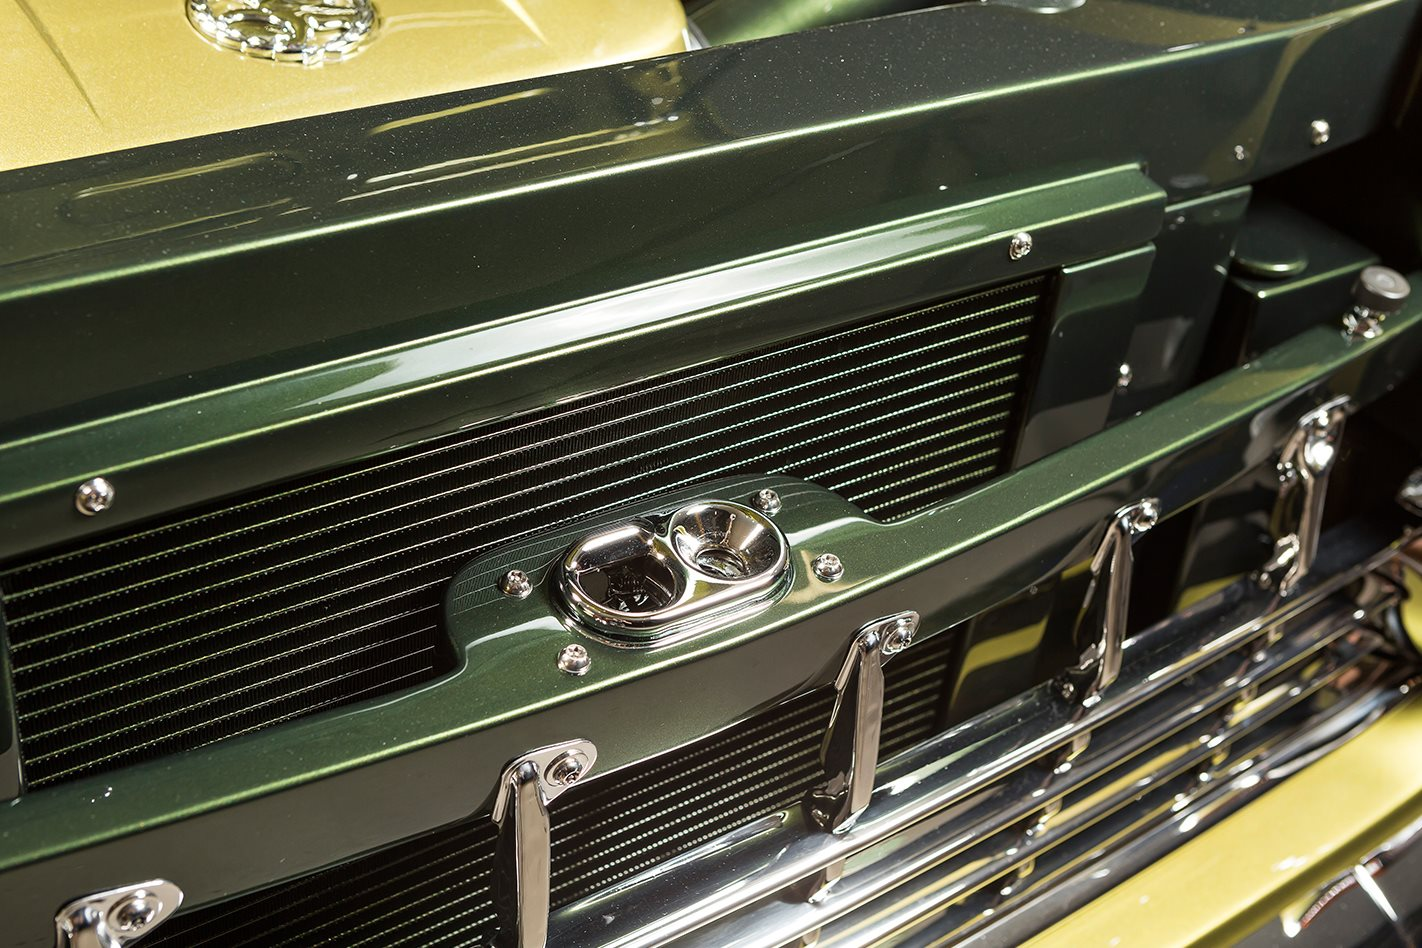 Holden FB Tailspin radiator